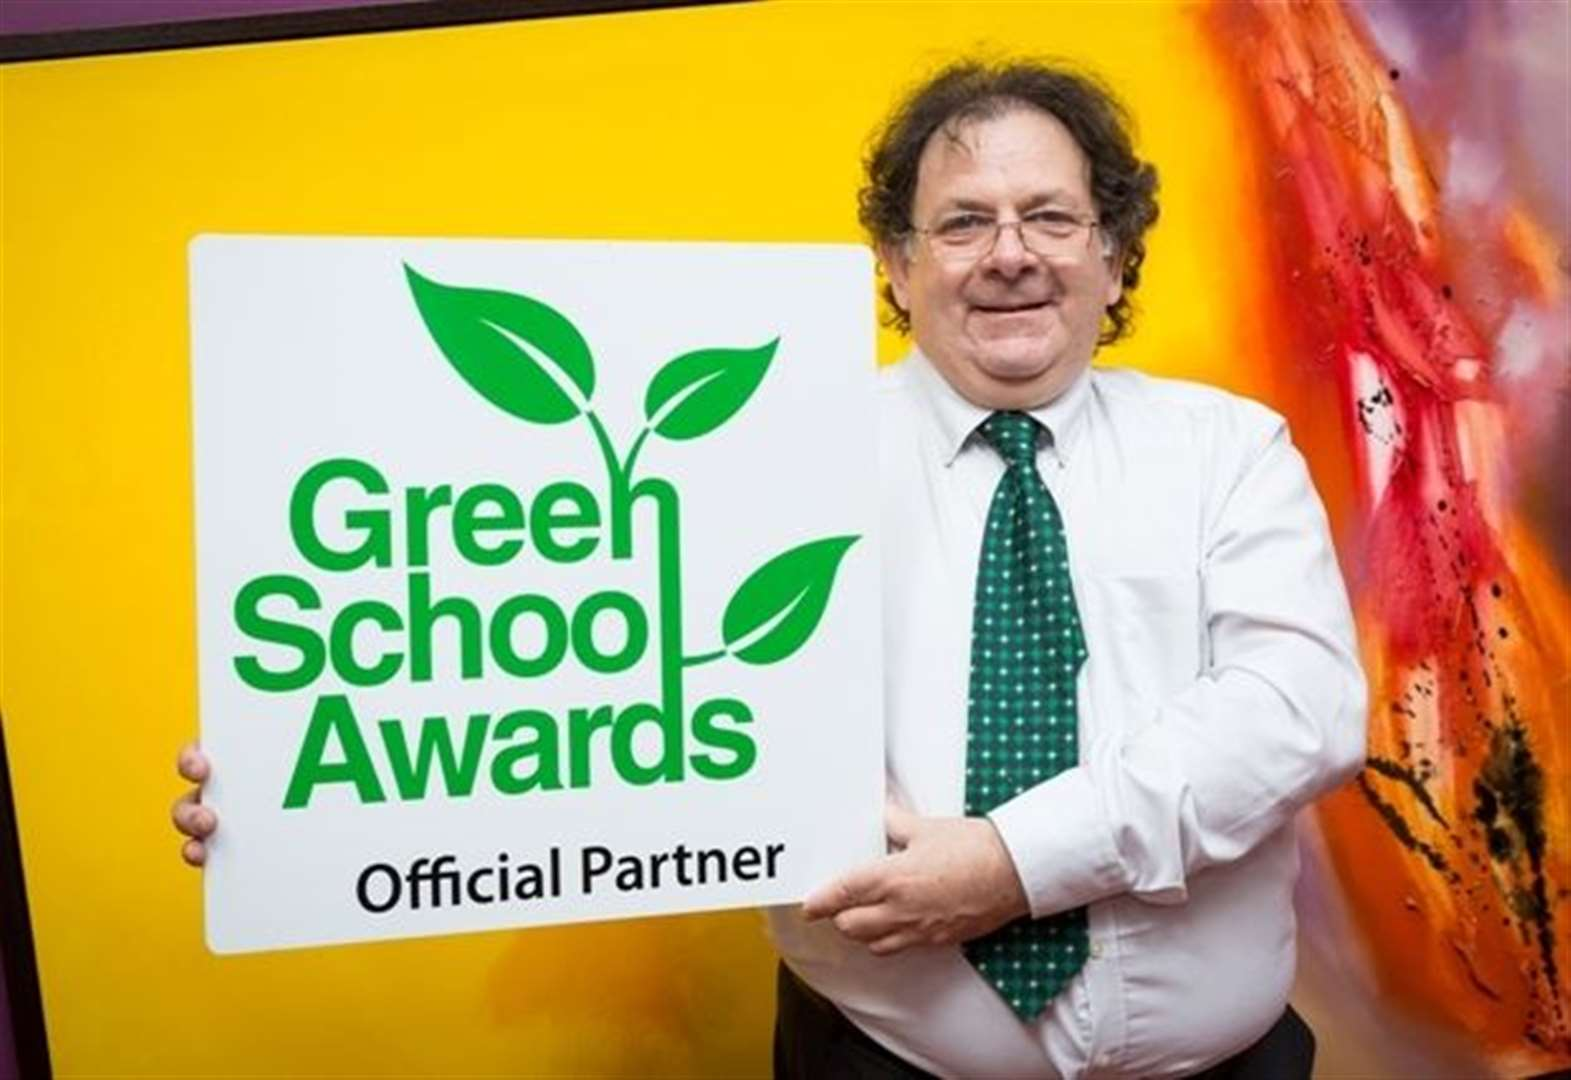 Environmental awards promote 'green three Rs'